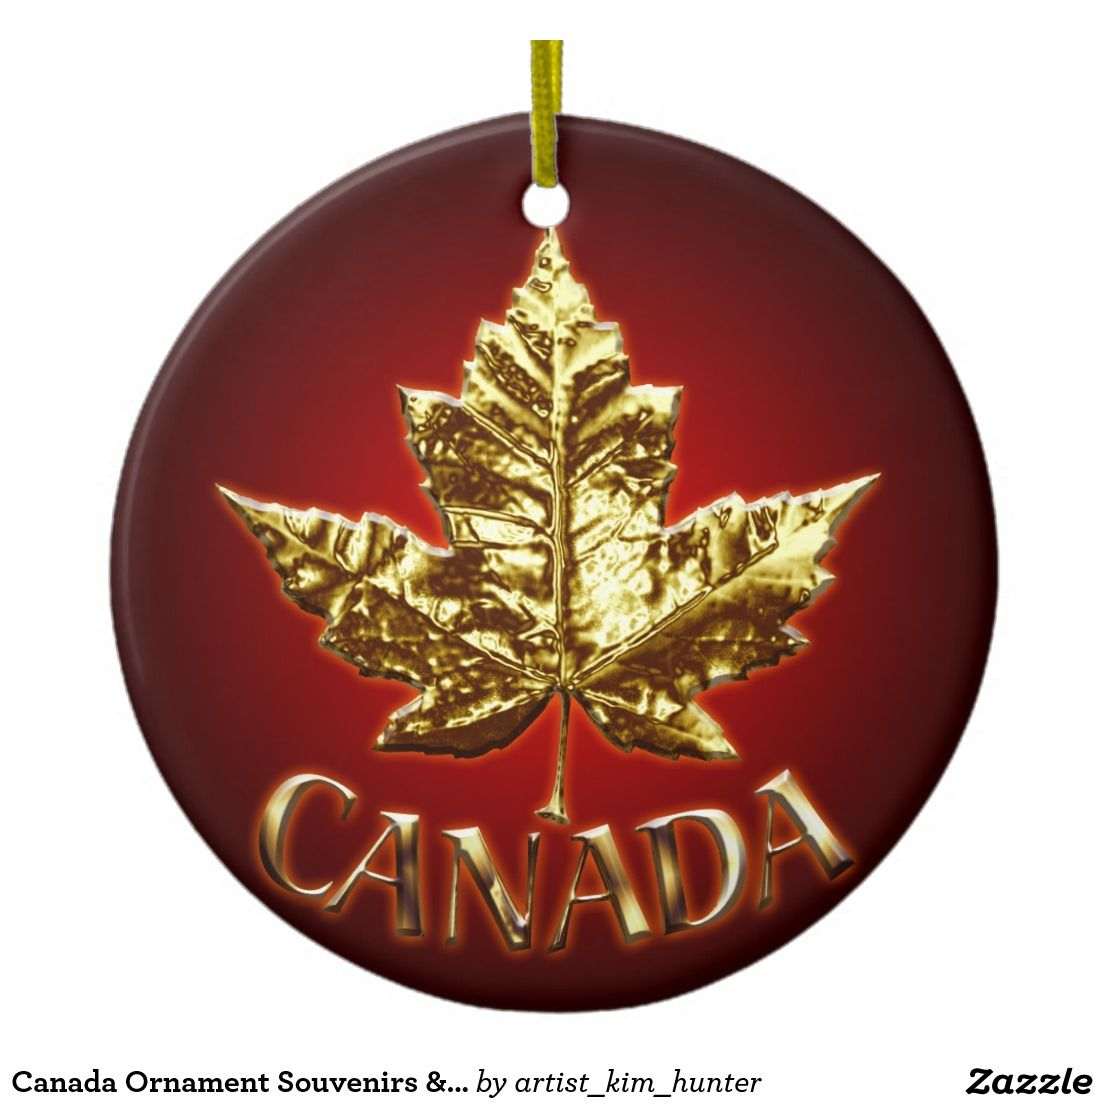 Canada Ornament Souvenirs Canada Gifts Zazzle Com Unique Christmas Ornaments Christmas Tree Ornaments Christmas Ornaments